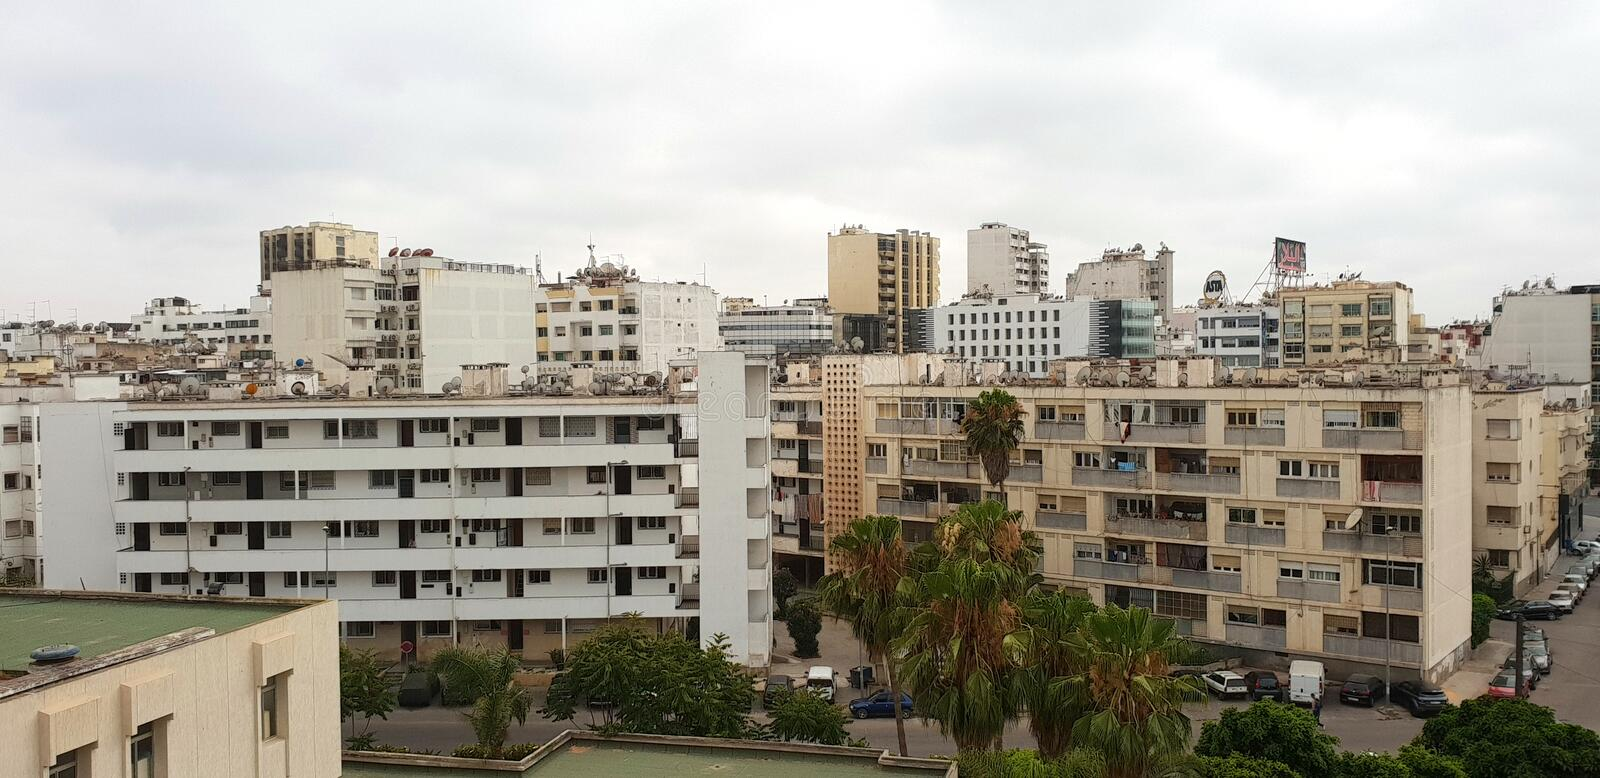 Panoramic skyline and buildings in casablanca, Morocco. CASABLANCA, MOROCCO - July 20: Panoramic skyline and buildings in casablanca, Morocco on luly 20, 2018 stock photography